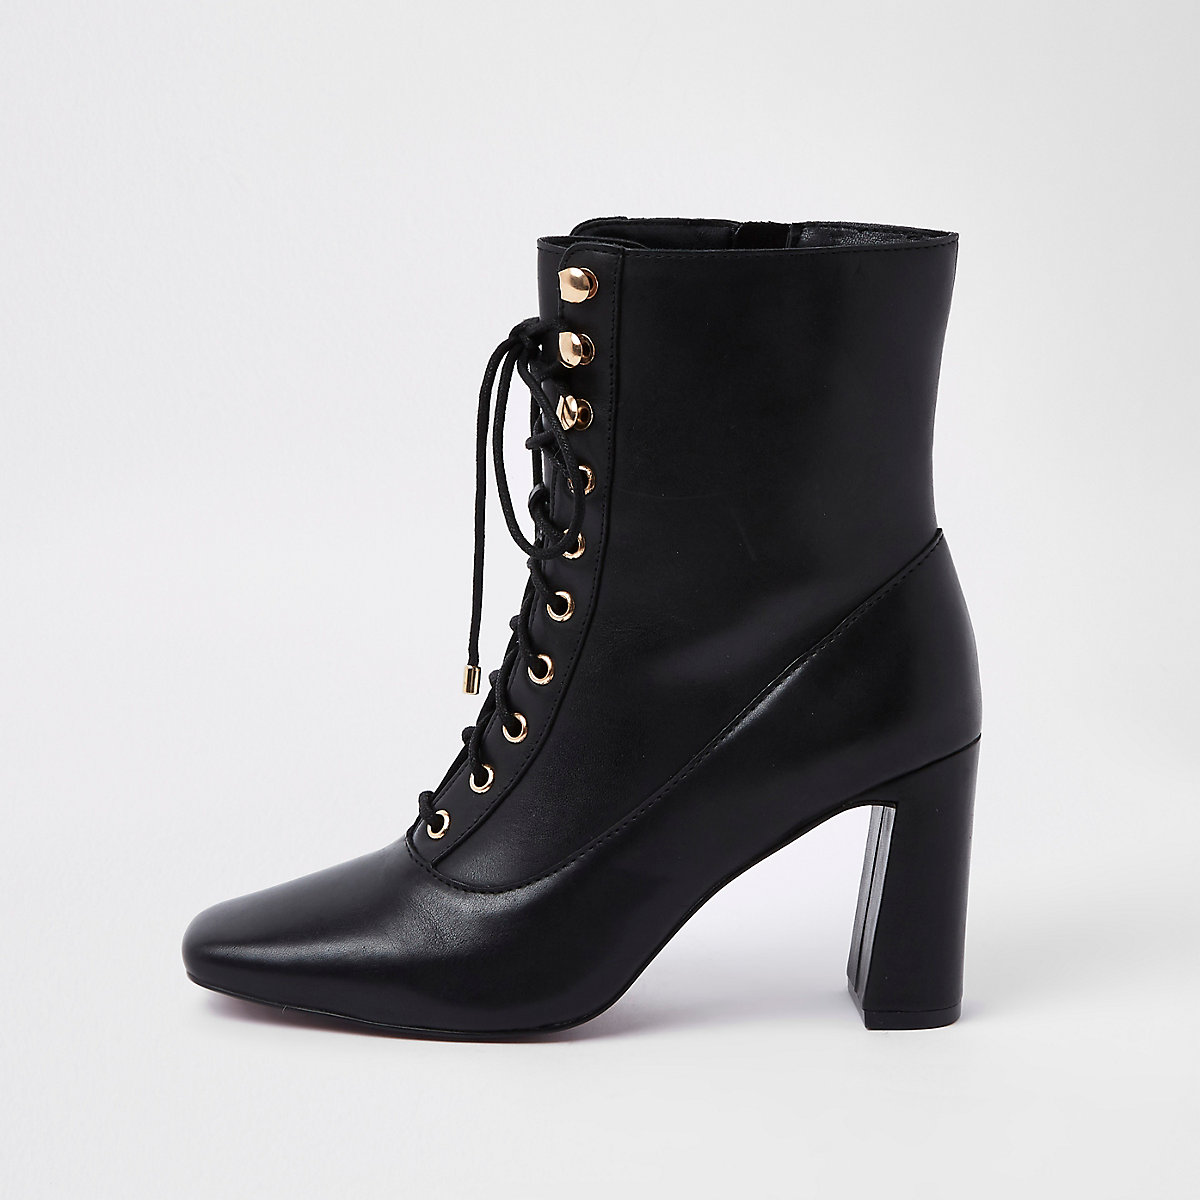 Black leather lace-up square toe boots